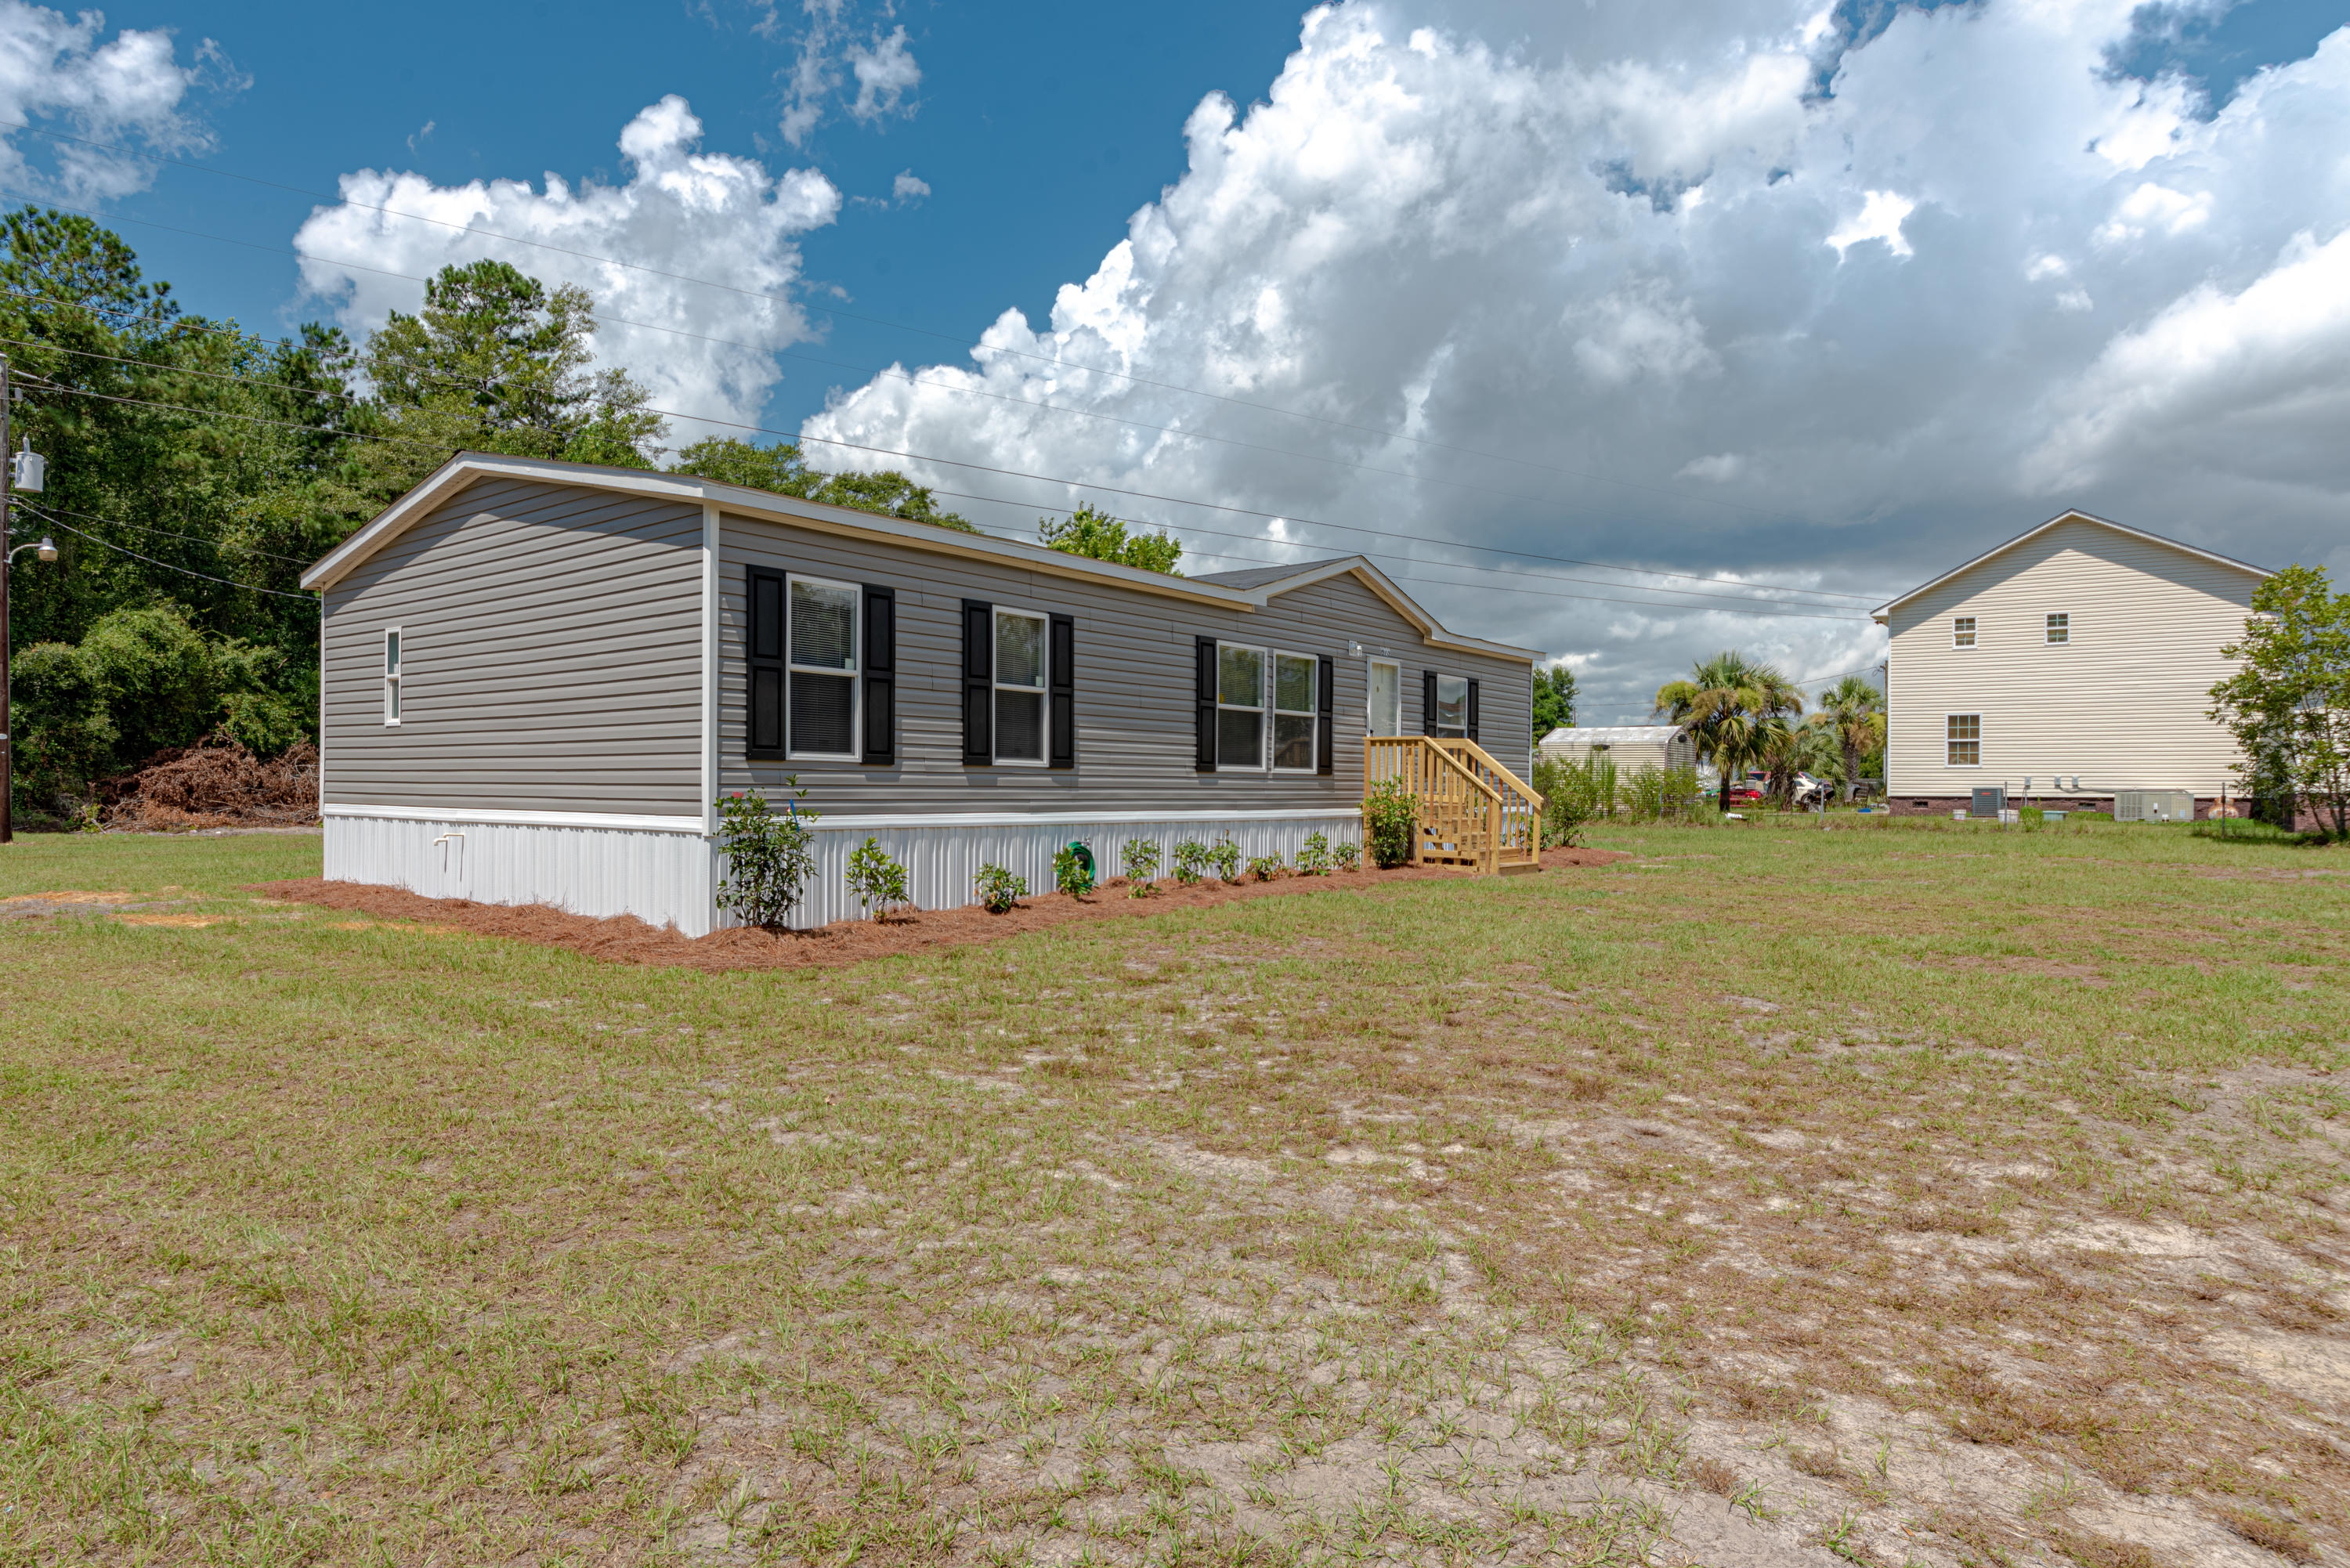 Roosevelt Heights Homes For Sale - 873 Phillips, Walterboro, SC - 1